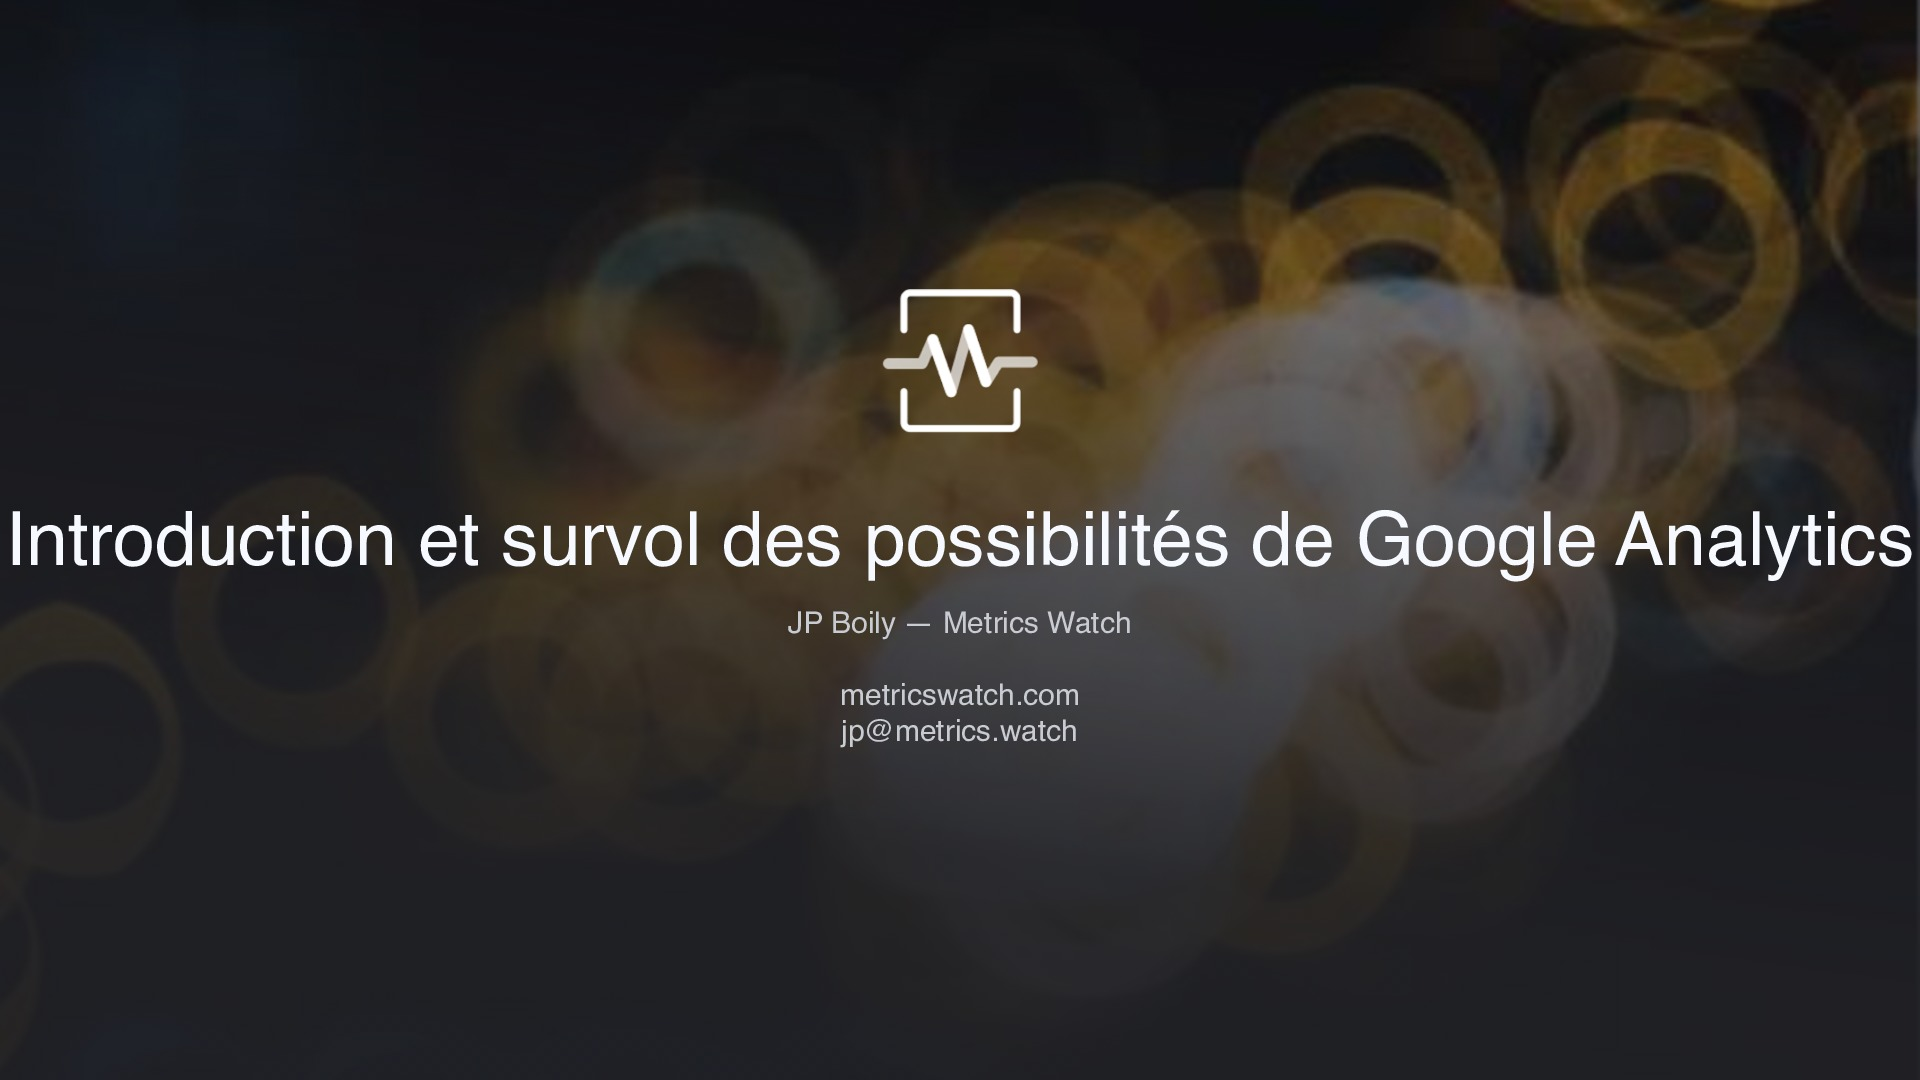 (CÉGEP Jonq) Introduction et survol des possibilités de Google Analytics